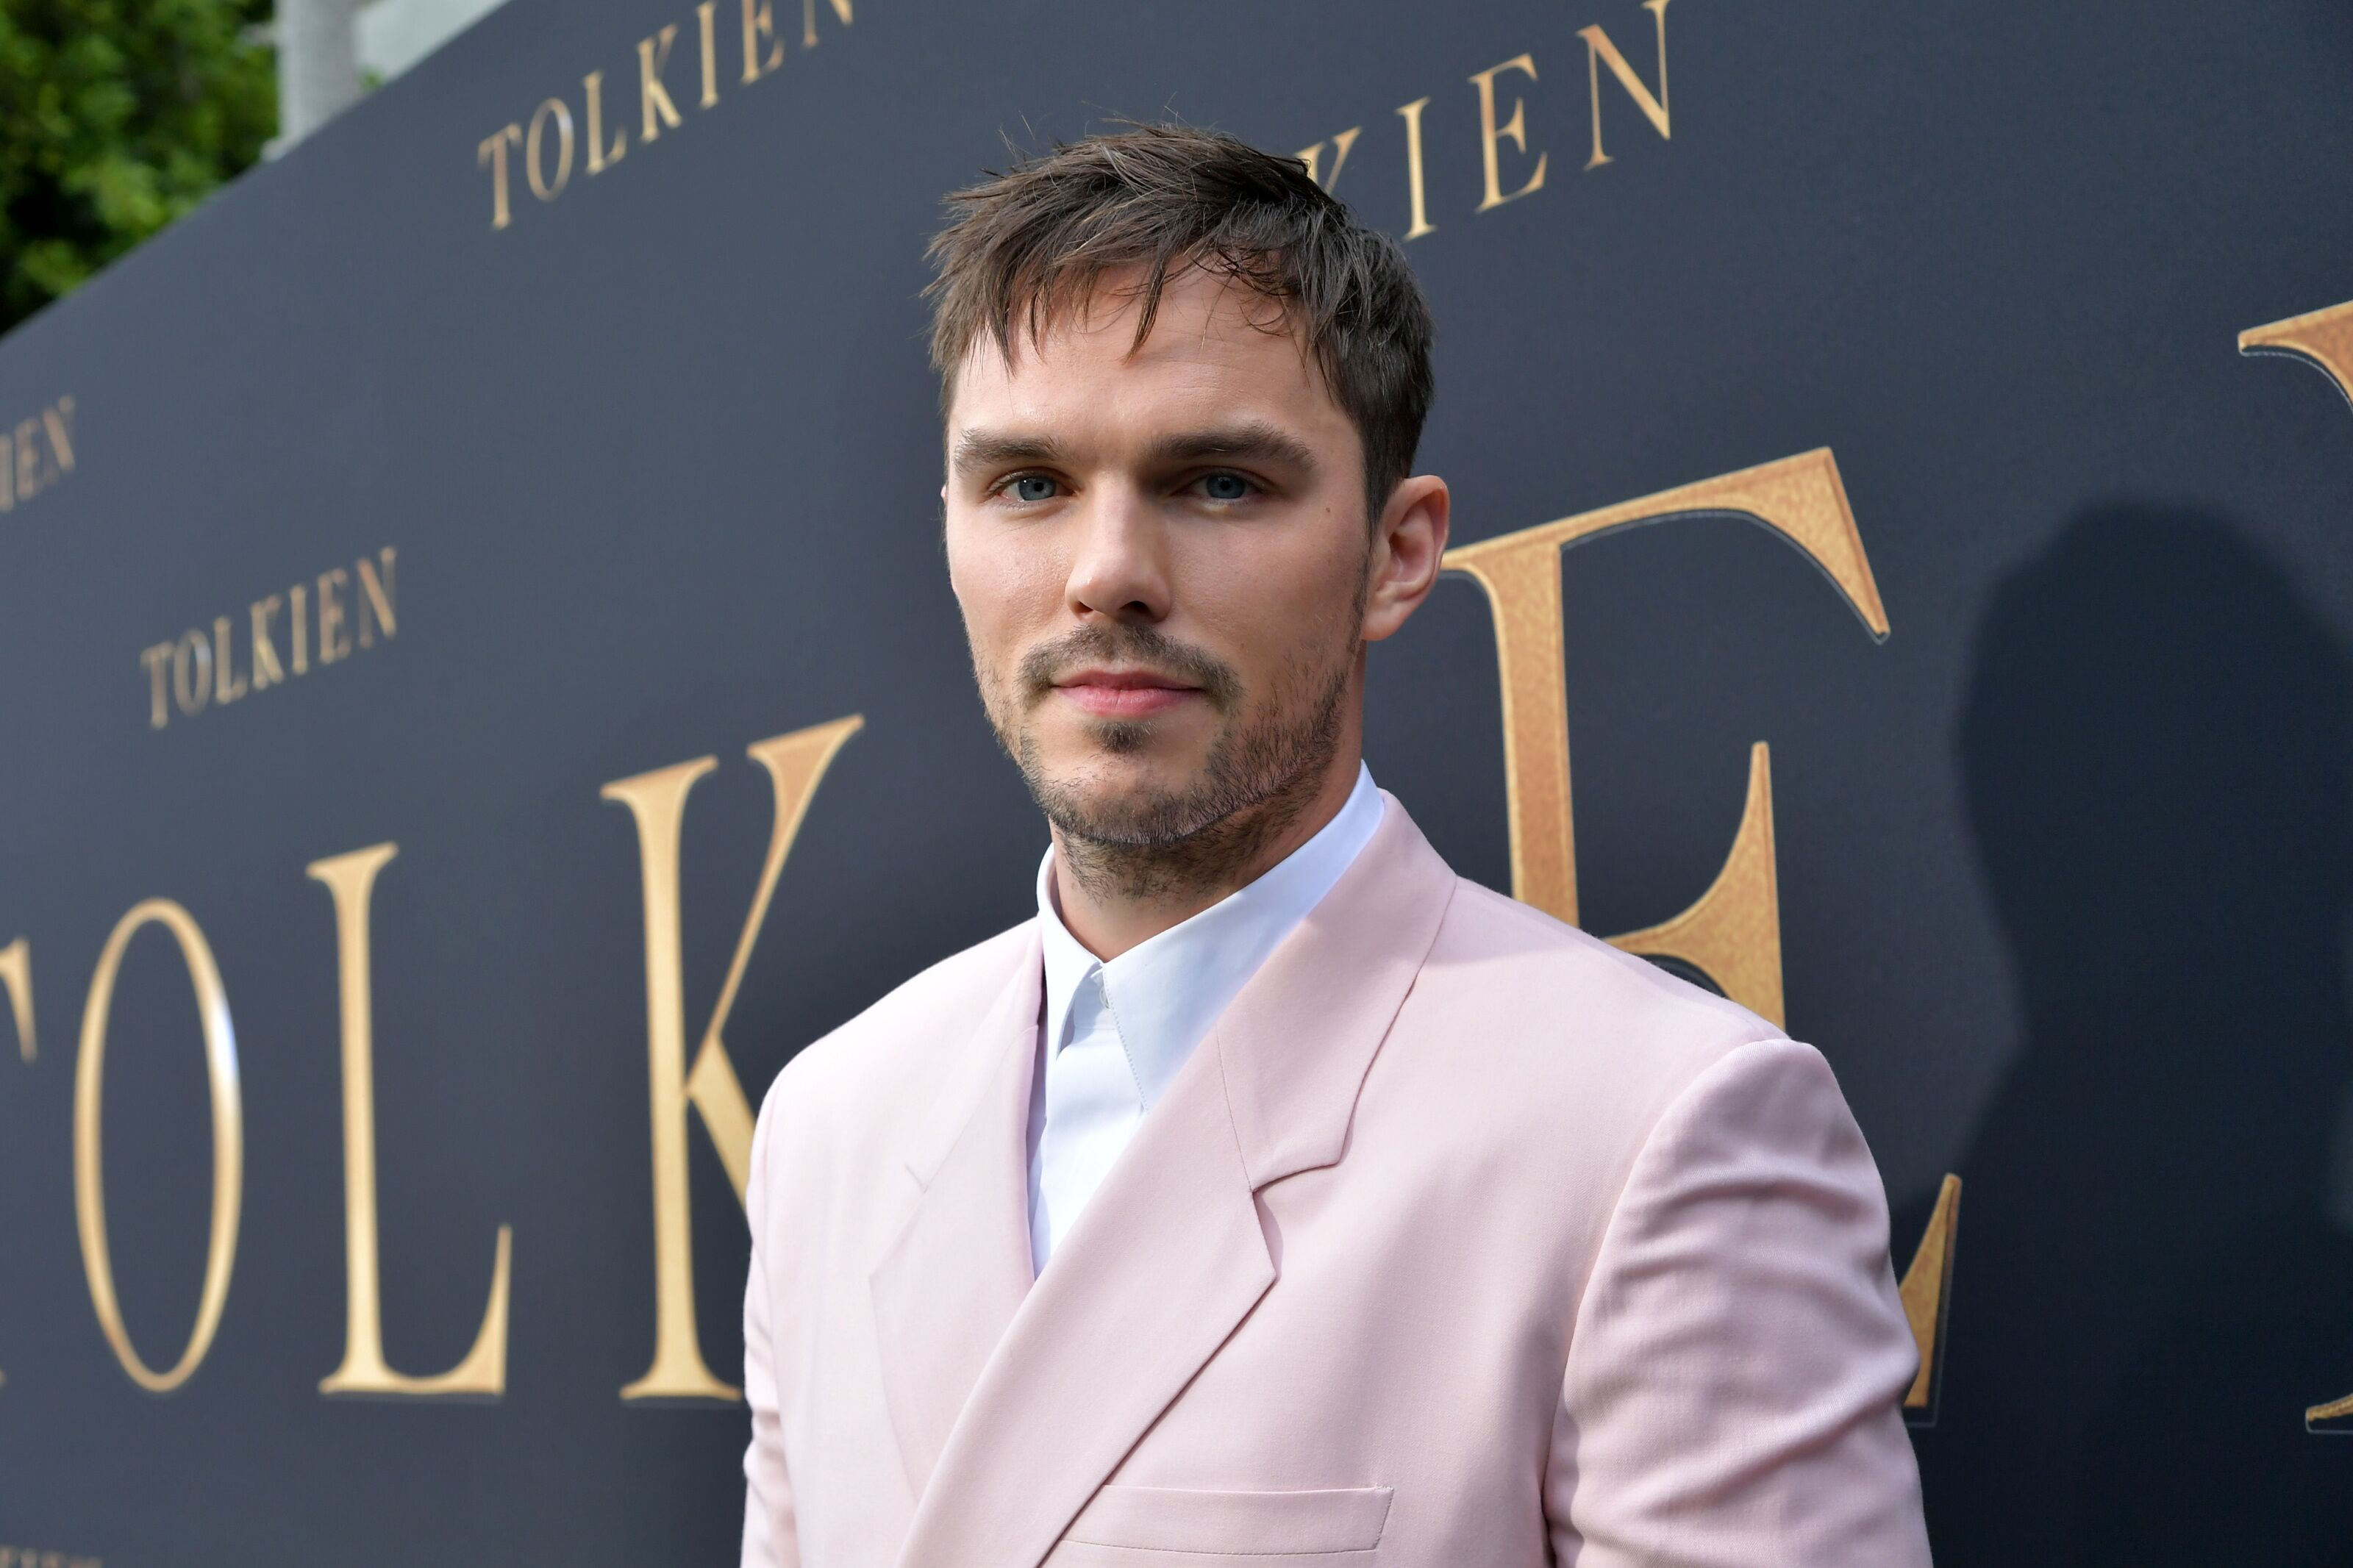 Nicolas Hoult auditioned to play Jon Snow, and other celebrity stuff